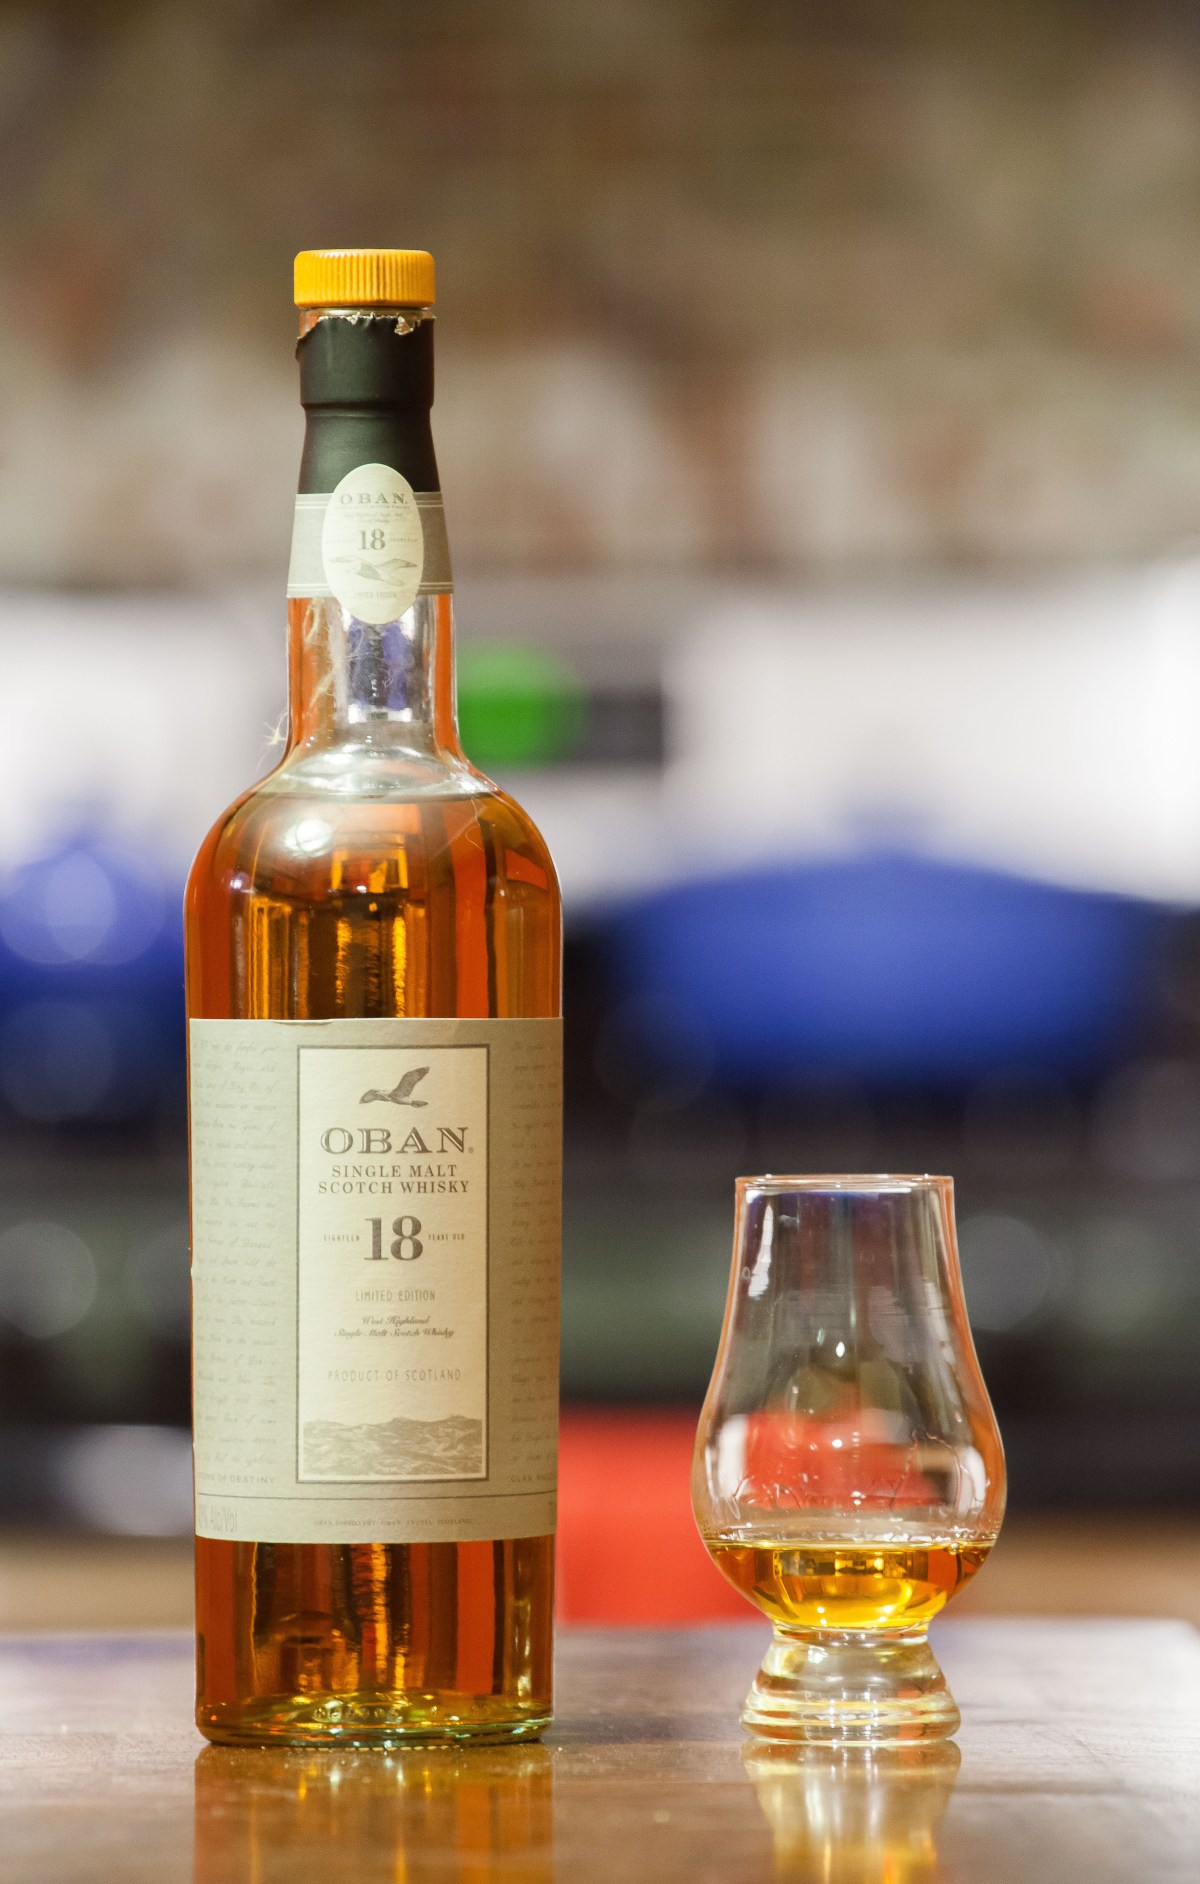 Oban 18 Review